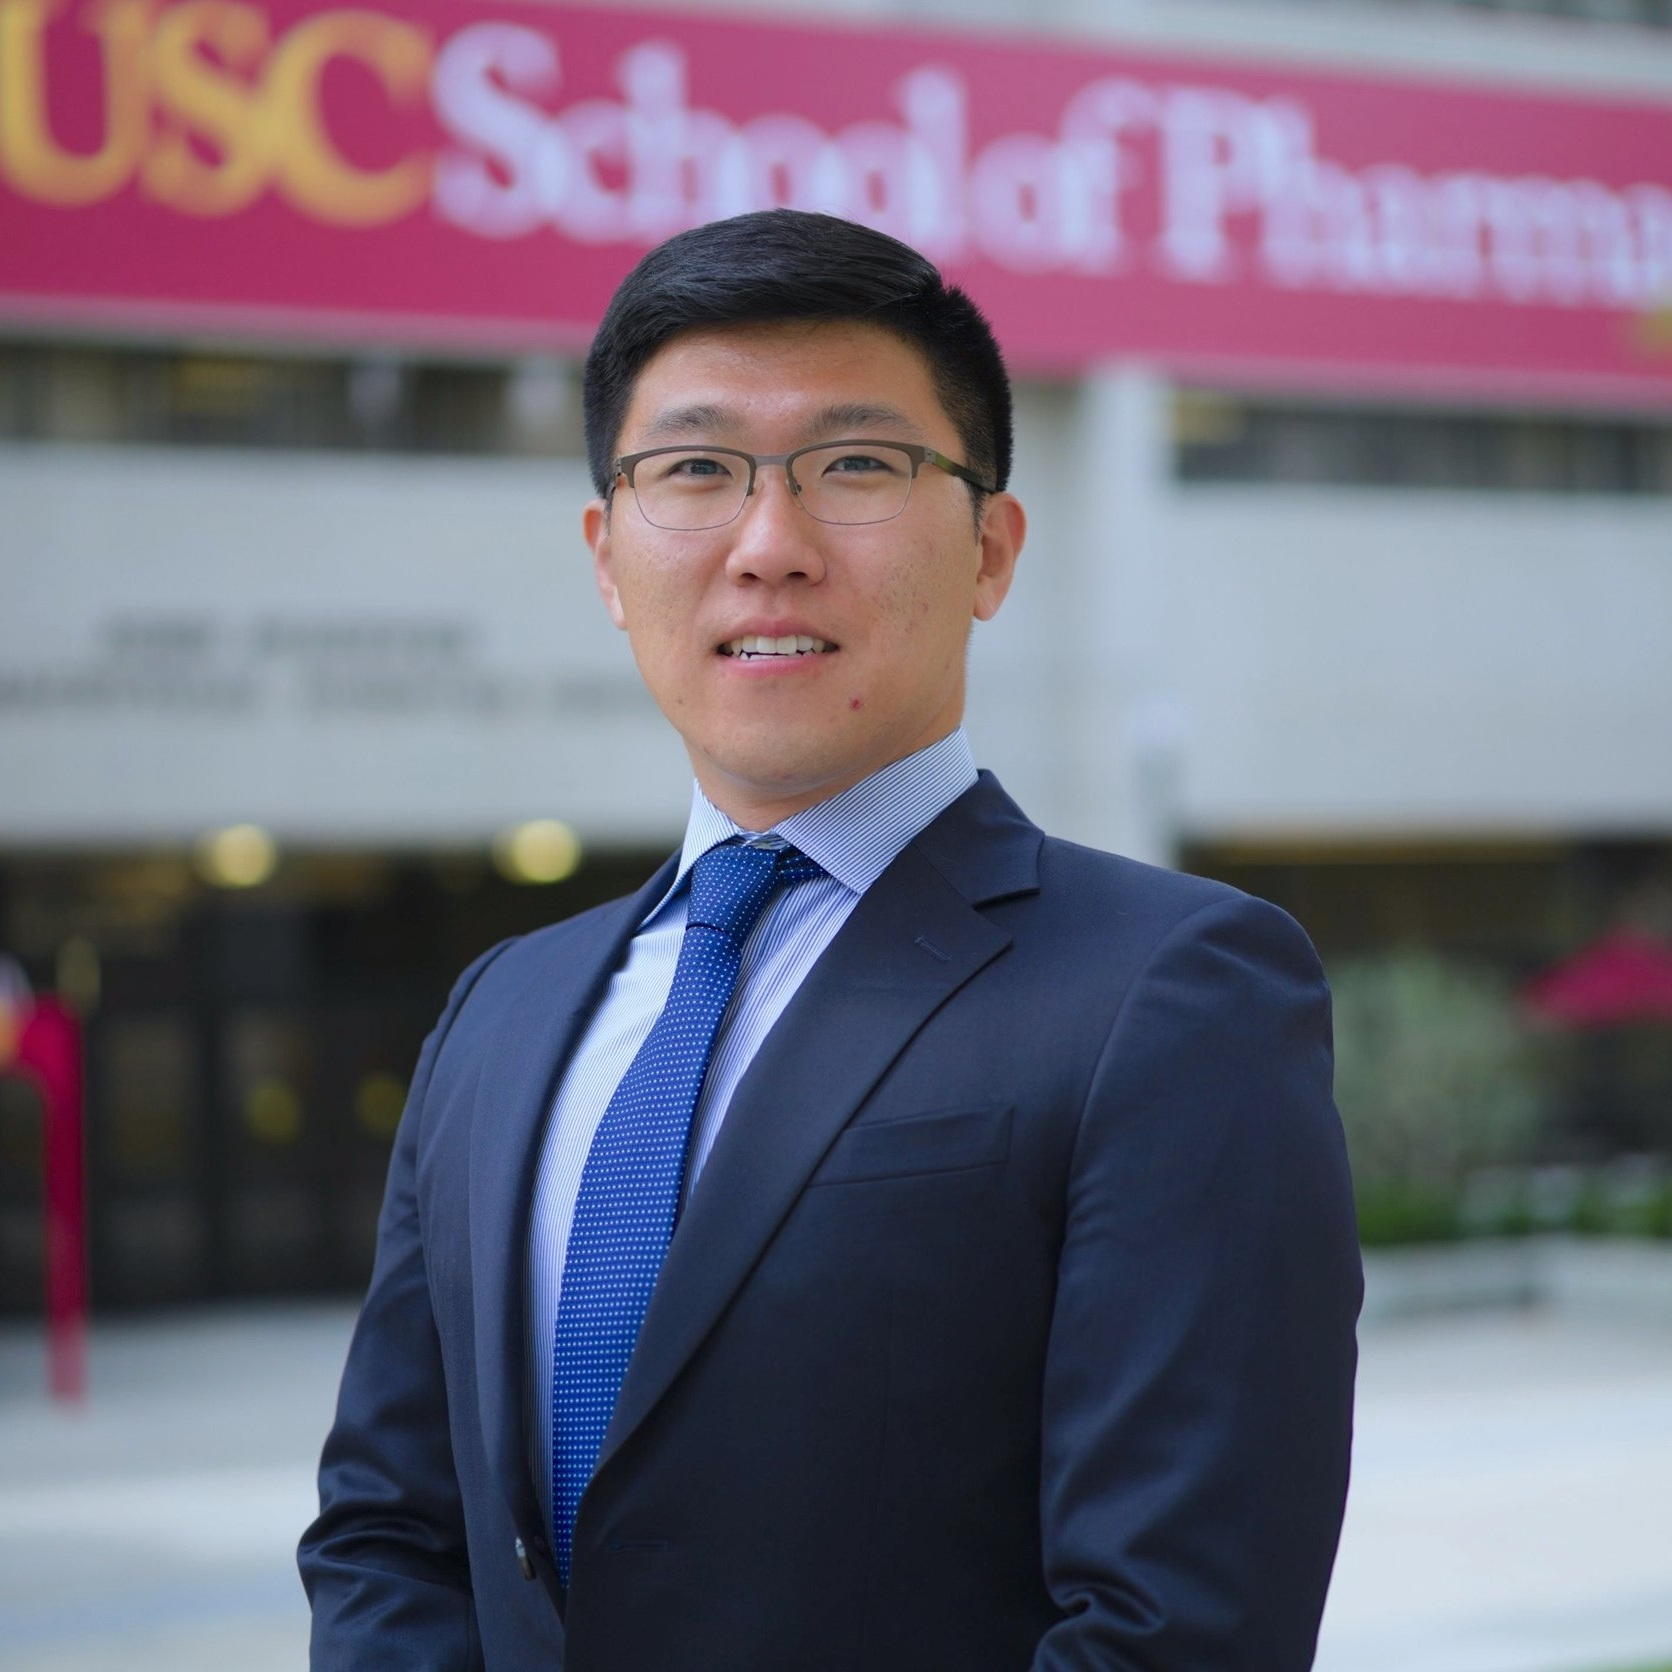 Minchang Choi is a first year Ph.D Student at the USC School of Pharmacy. He completed his Doctor of Pharmacy degree at Ernest Mario School of Pharmacy Rutgers University, the State University of New Jersey. Minchang is currently co-mentored by Dr. Andrew MacKay and Dr. Sarah Hamm-Alvarez and he is working on identifying potential therapeutic and diagnostic targets for Sjögren's syndrome.